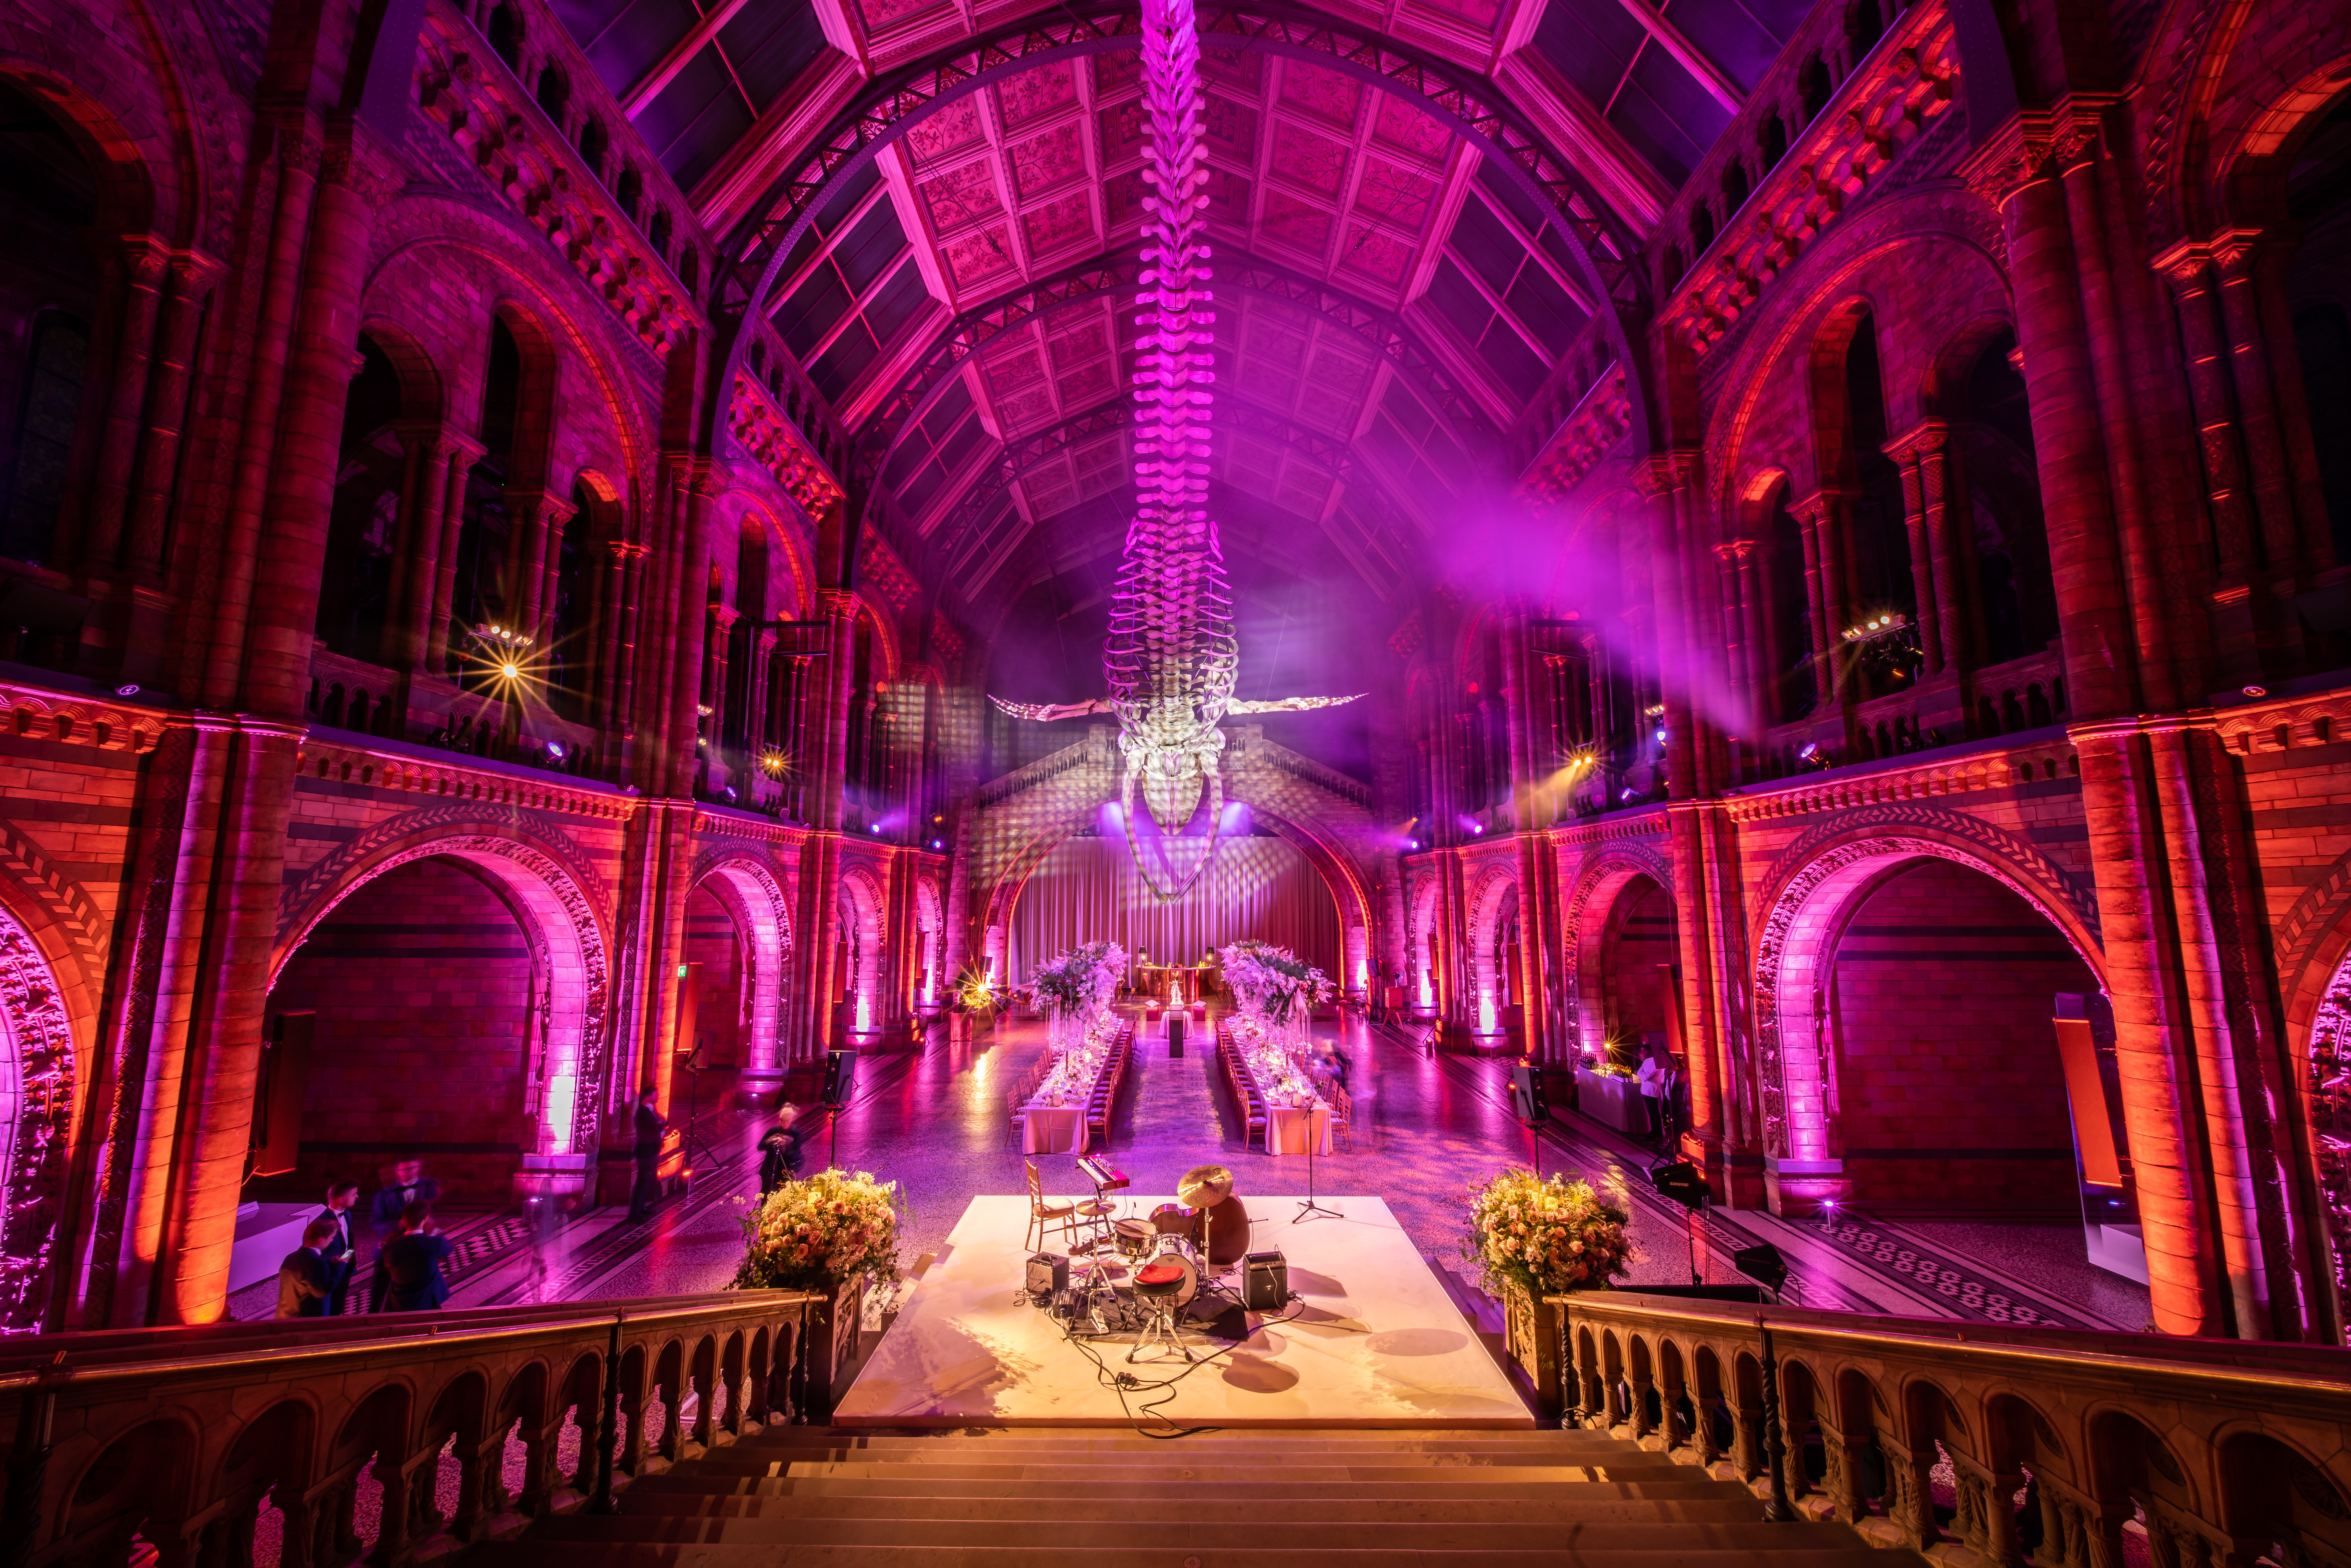 NHM wedding with dancefloor and banquet tables